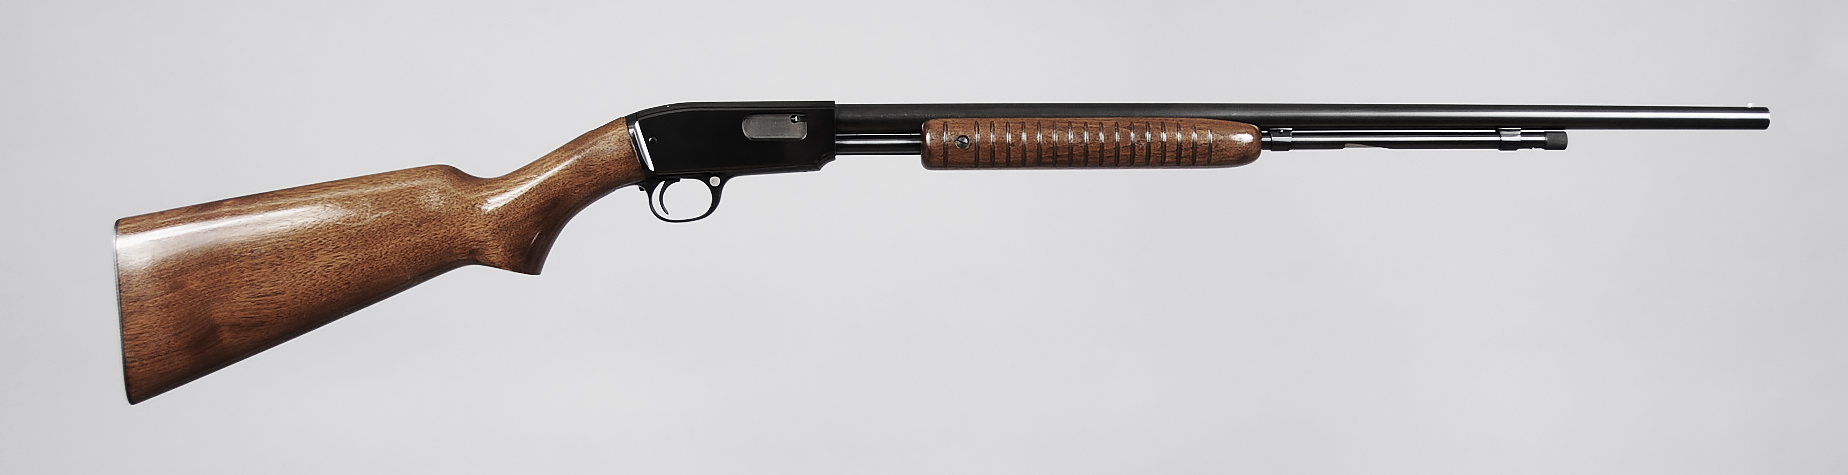 Rare Winchester Model 61 .22 LR Shot Only Rifle - Sold for $4,600